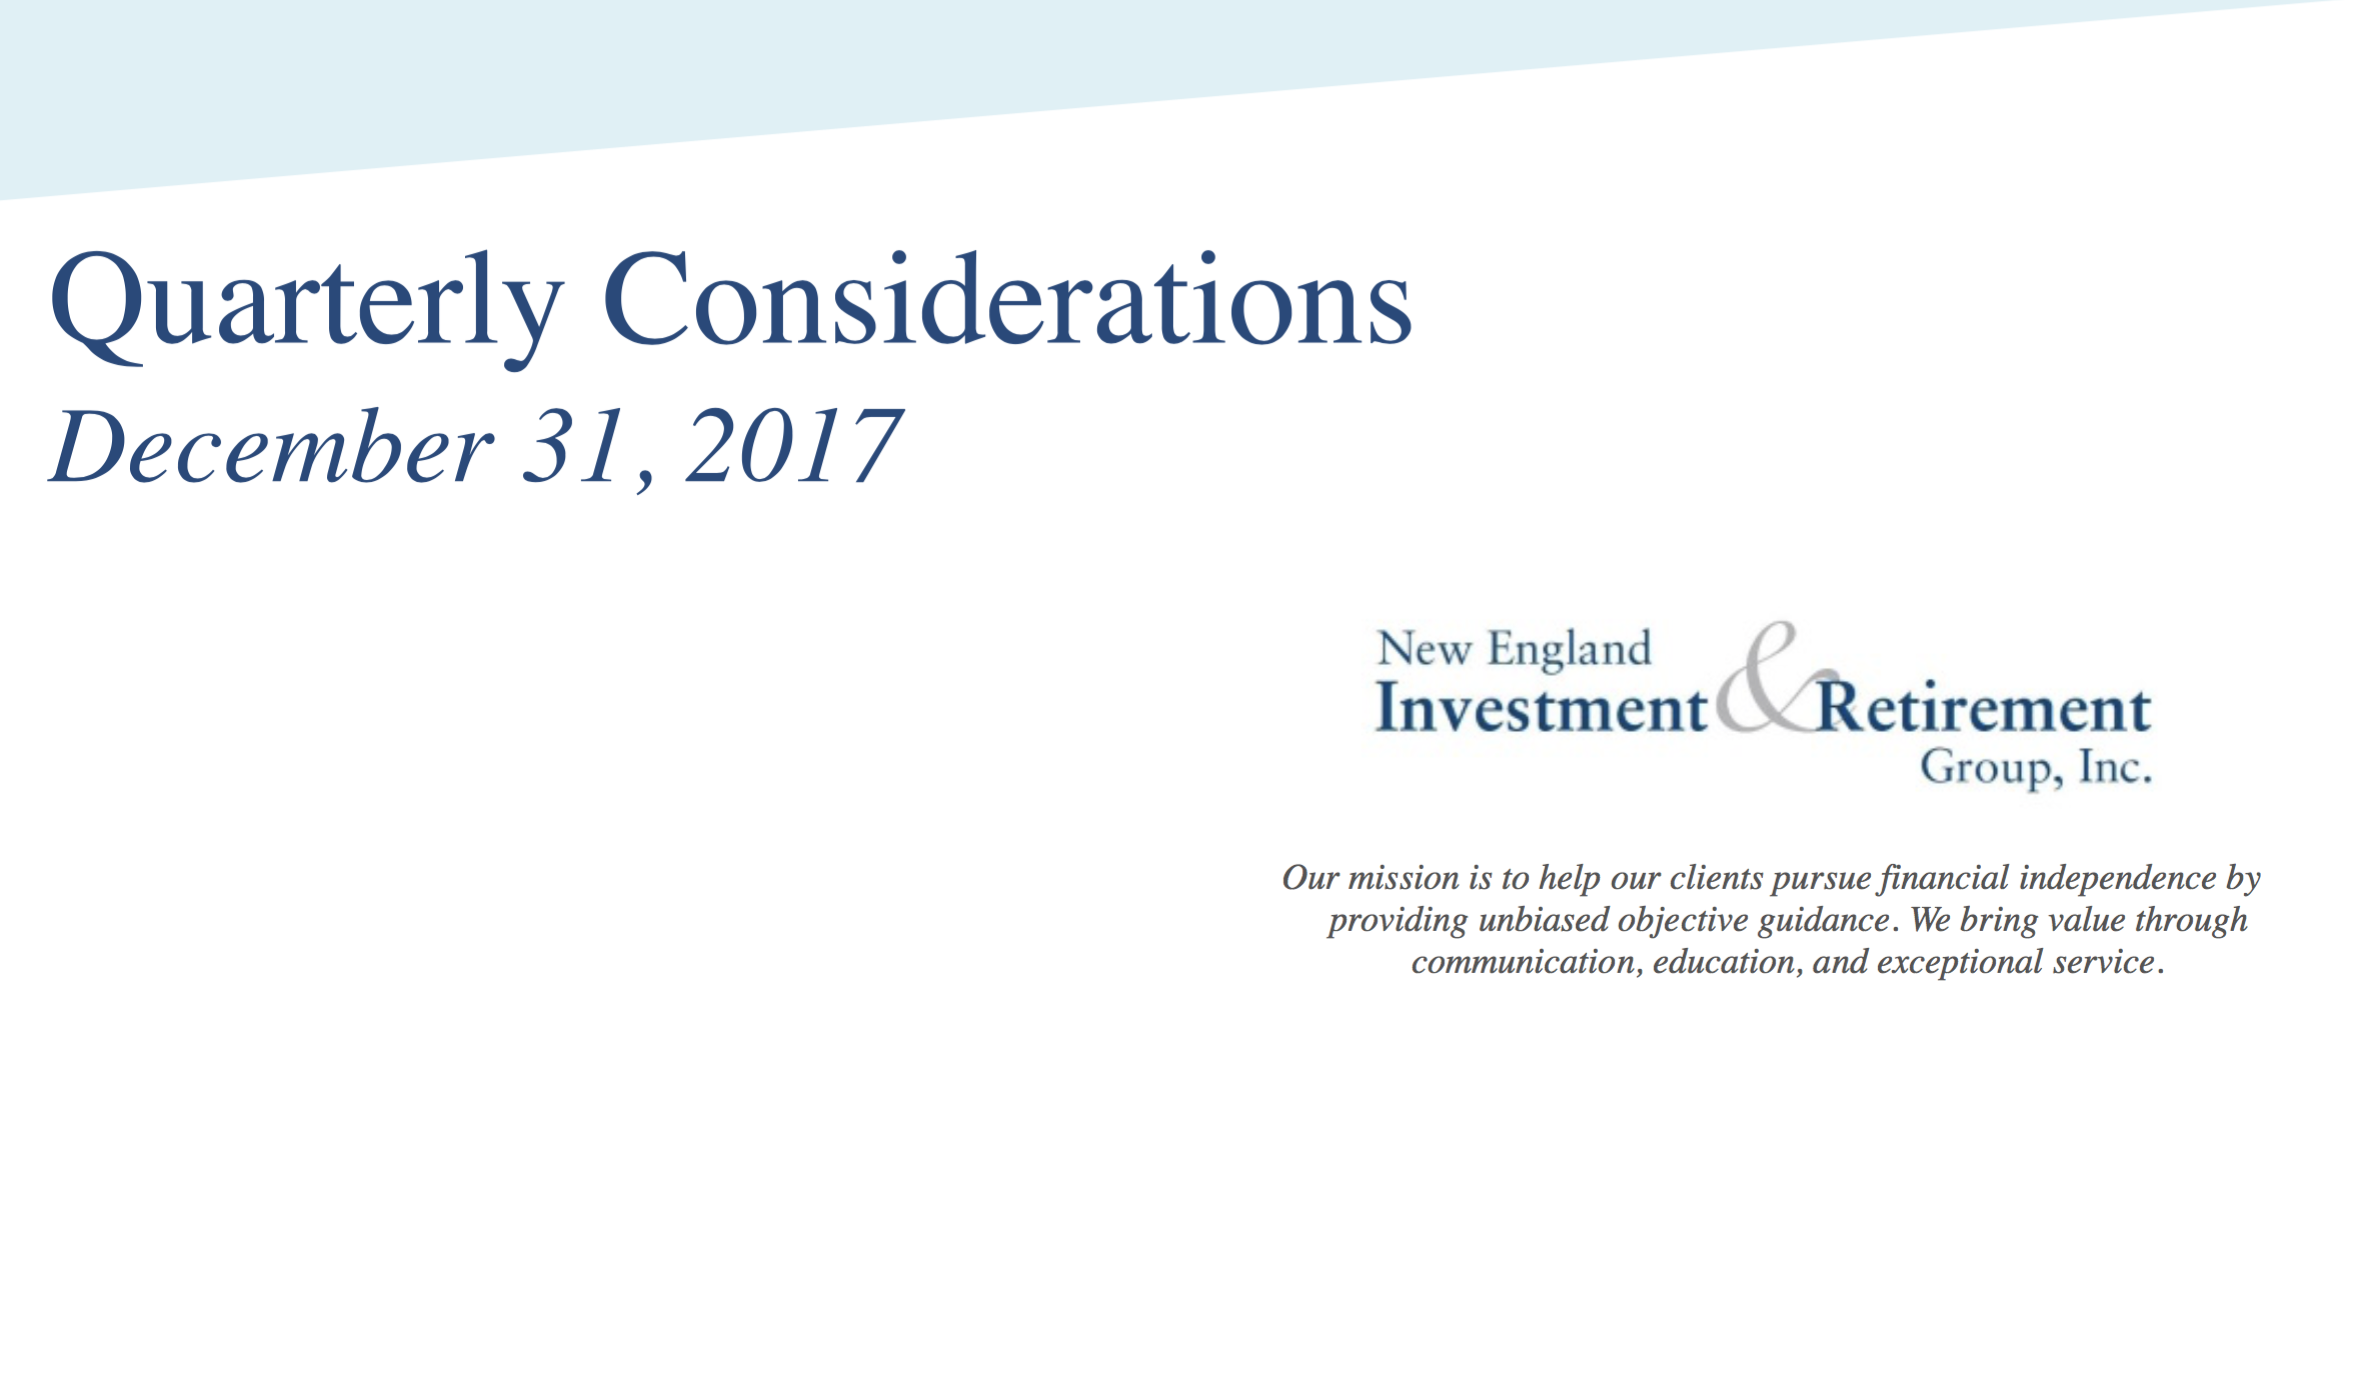 New England Investment & Retirement Group Quarterly Considerations Ending December 31 2017